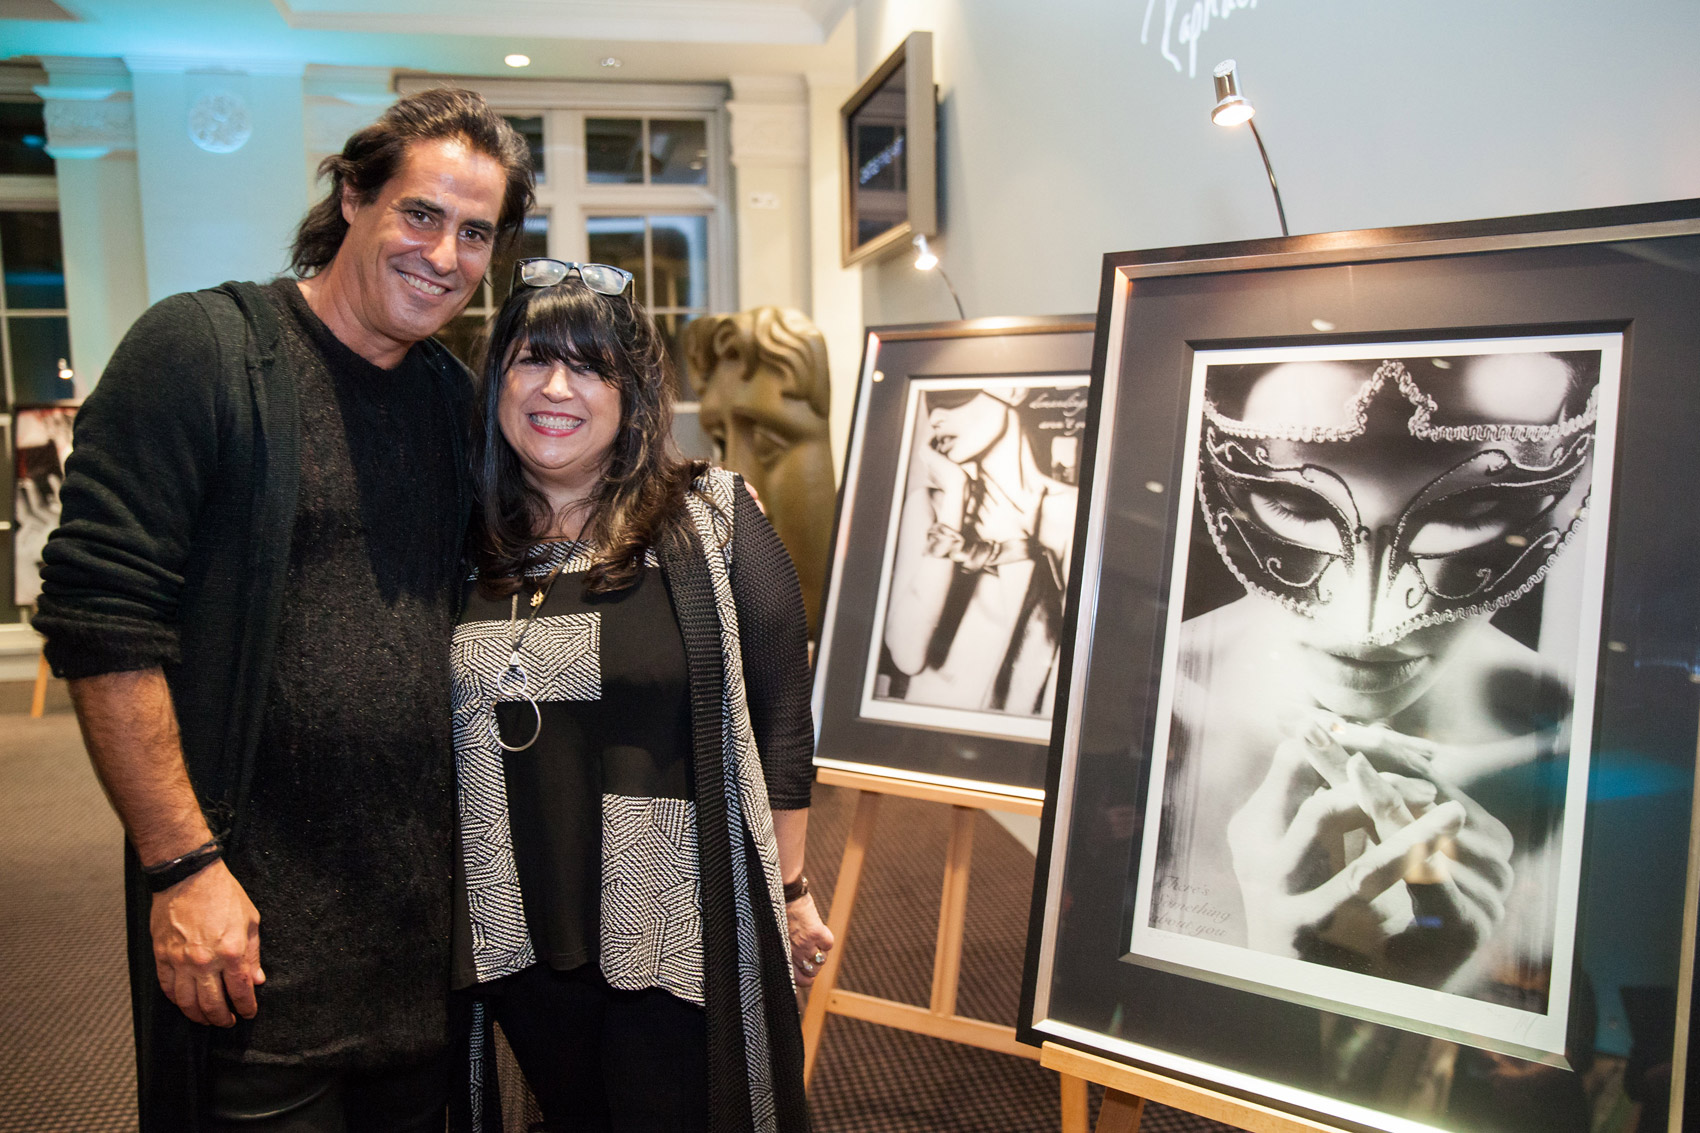 E. L. James The Author Of Fifty Shades Launches Art Collection in London